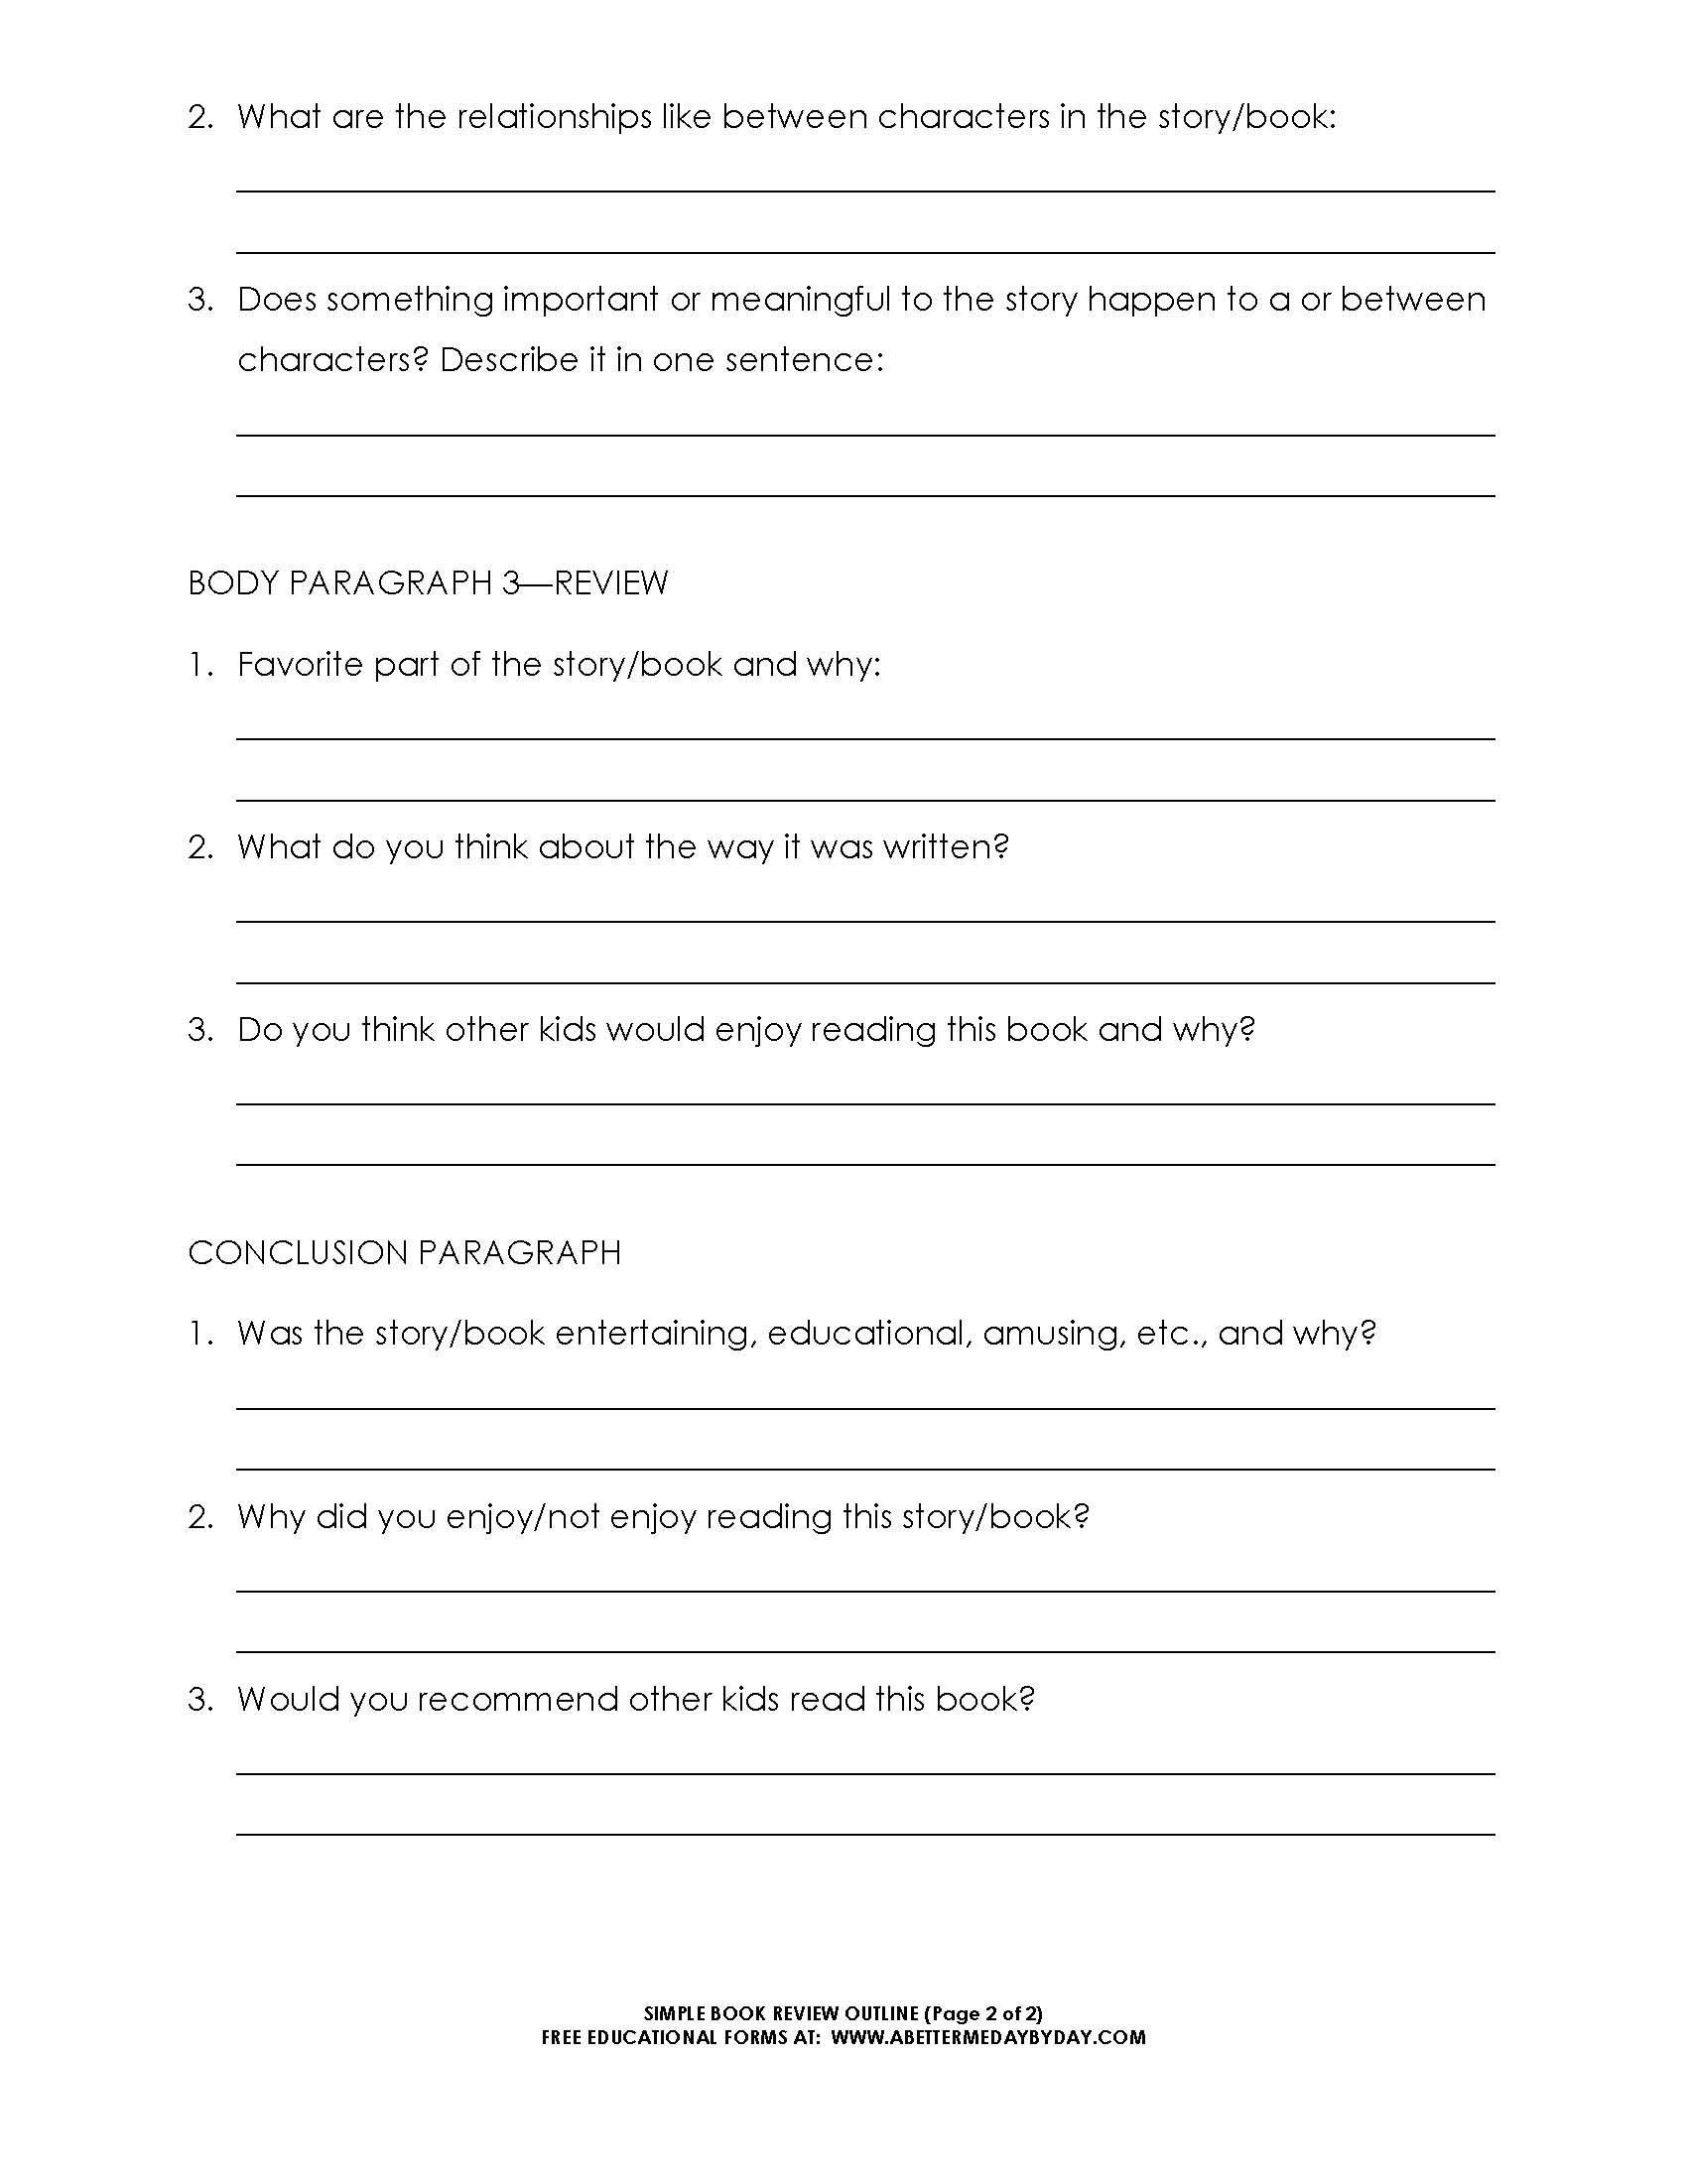 Free: Simple 5 Paragraph Book Review Or Report Outline Form For One Page Book Report Template